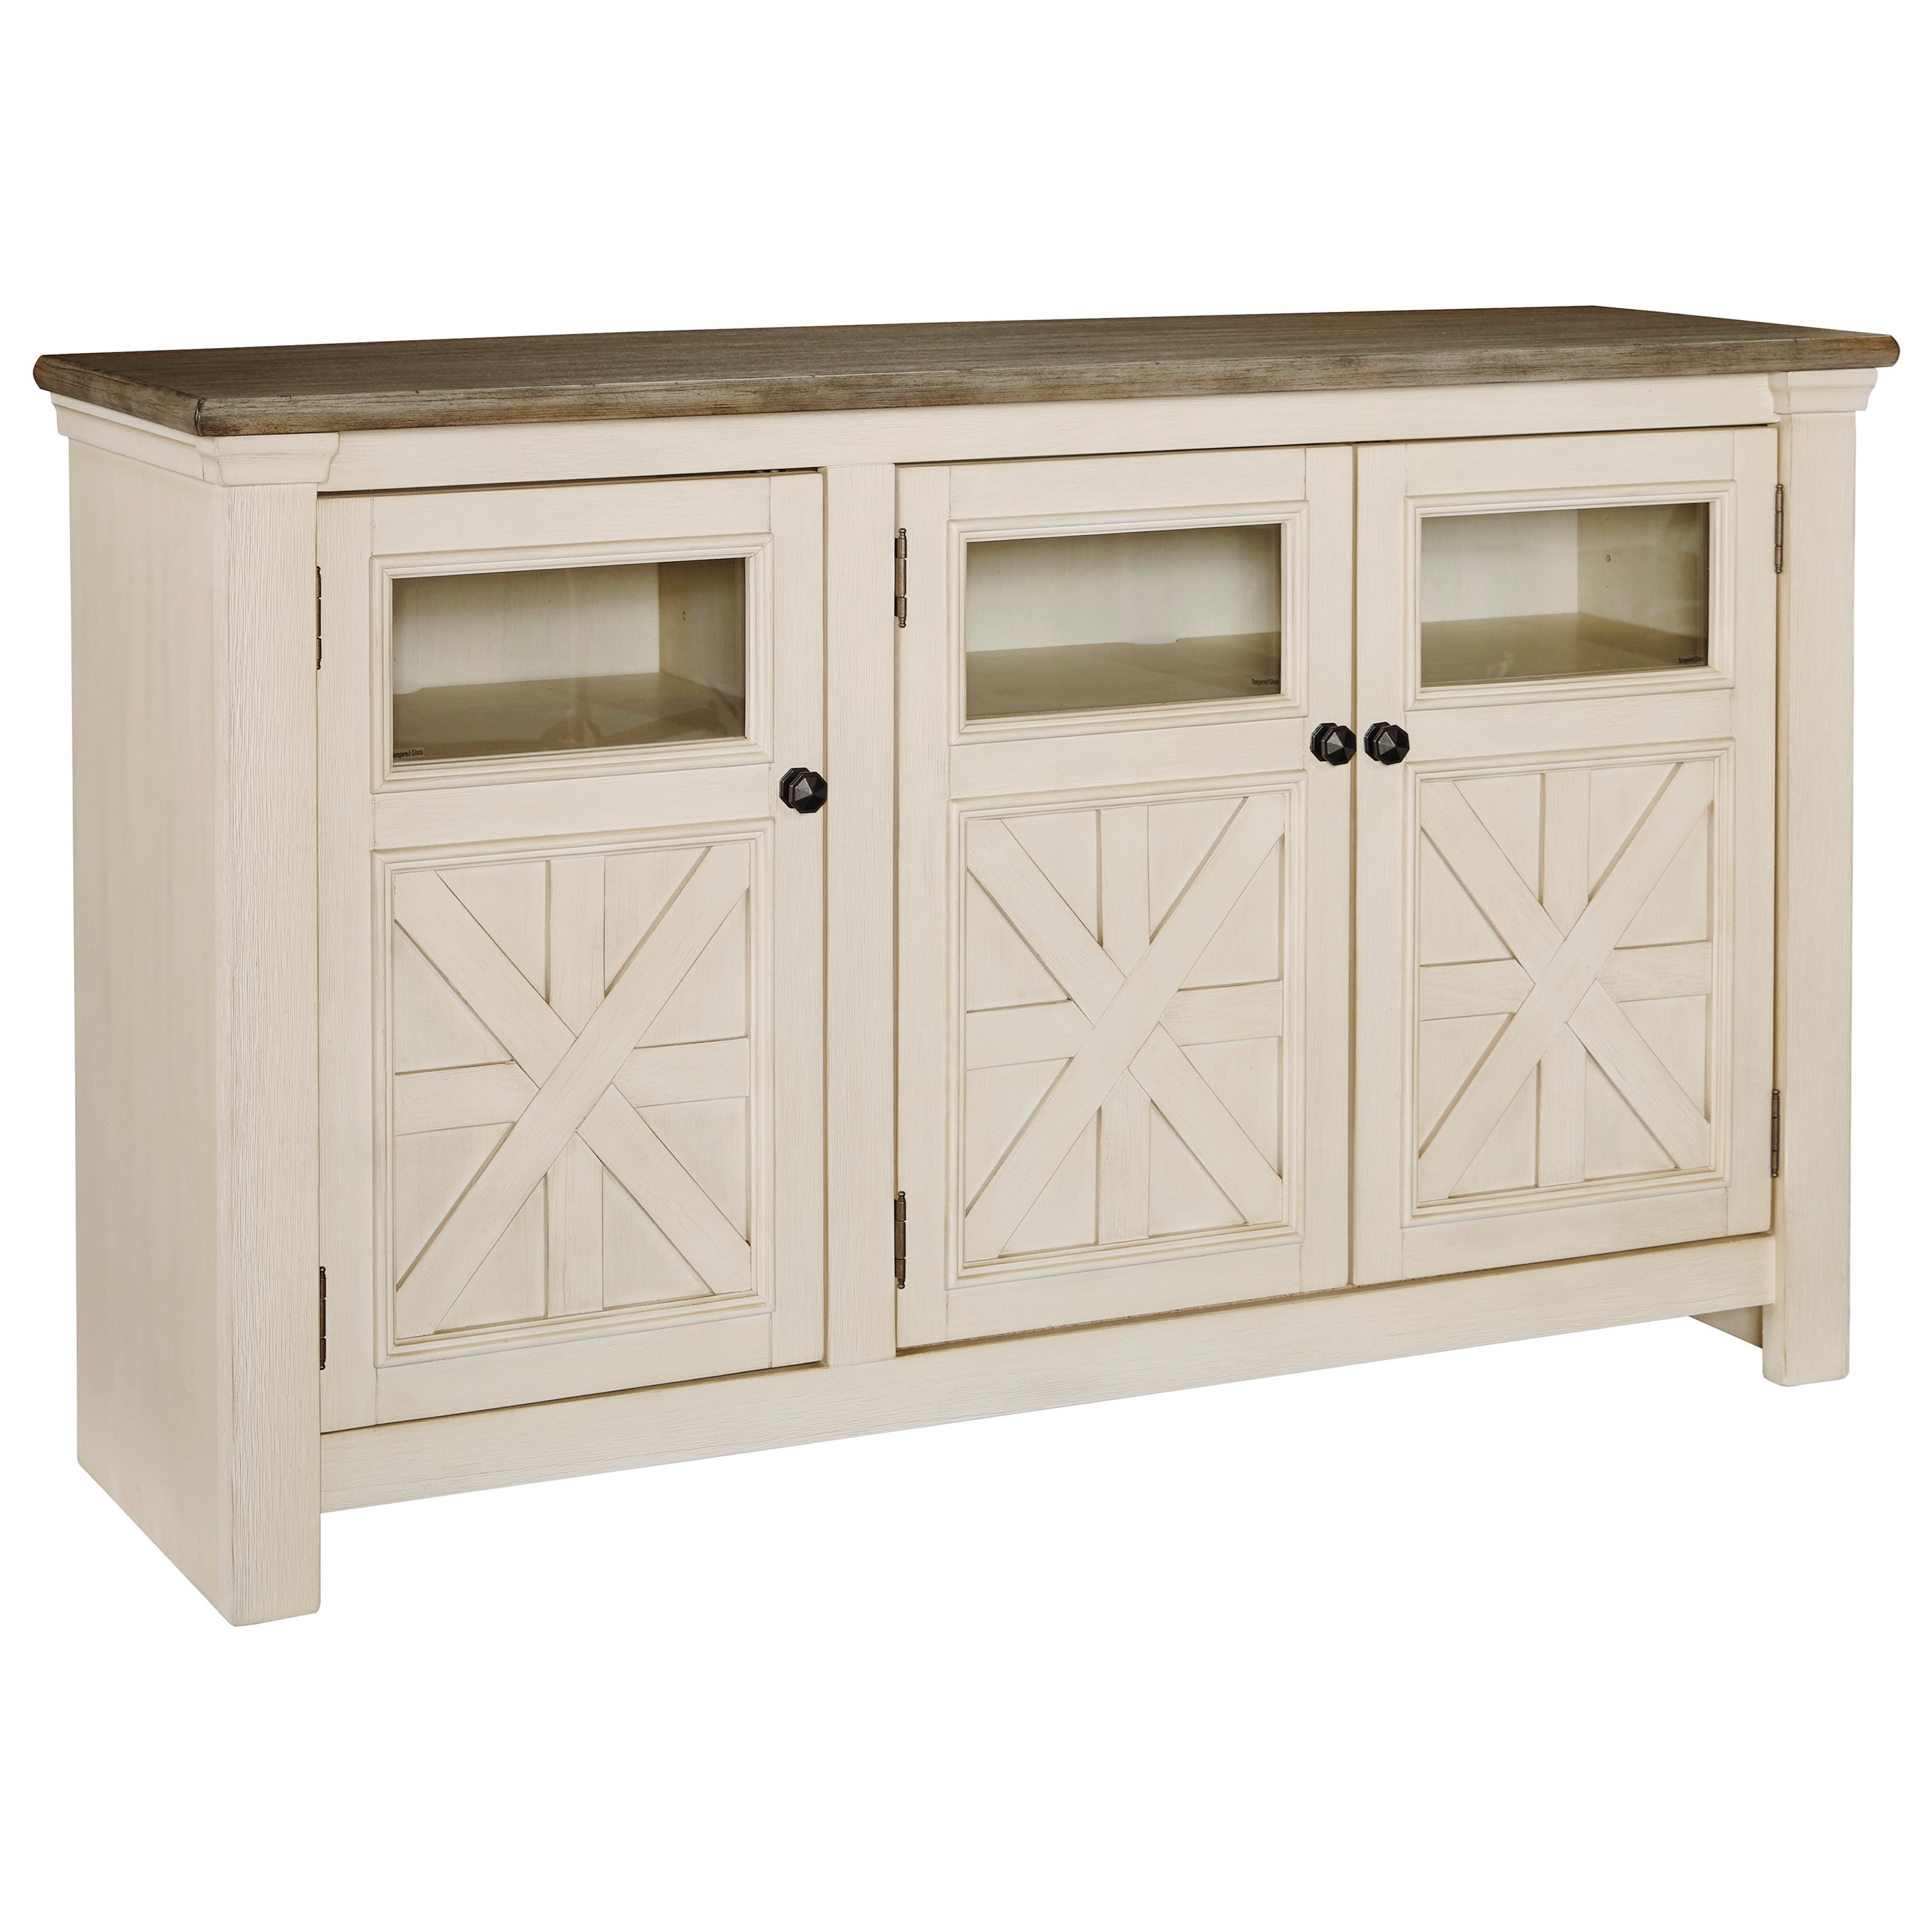 Bolanburg Large TV Stand by Signature Design by Ashley at Zak's Warehouse Clearance Center